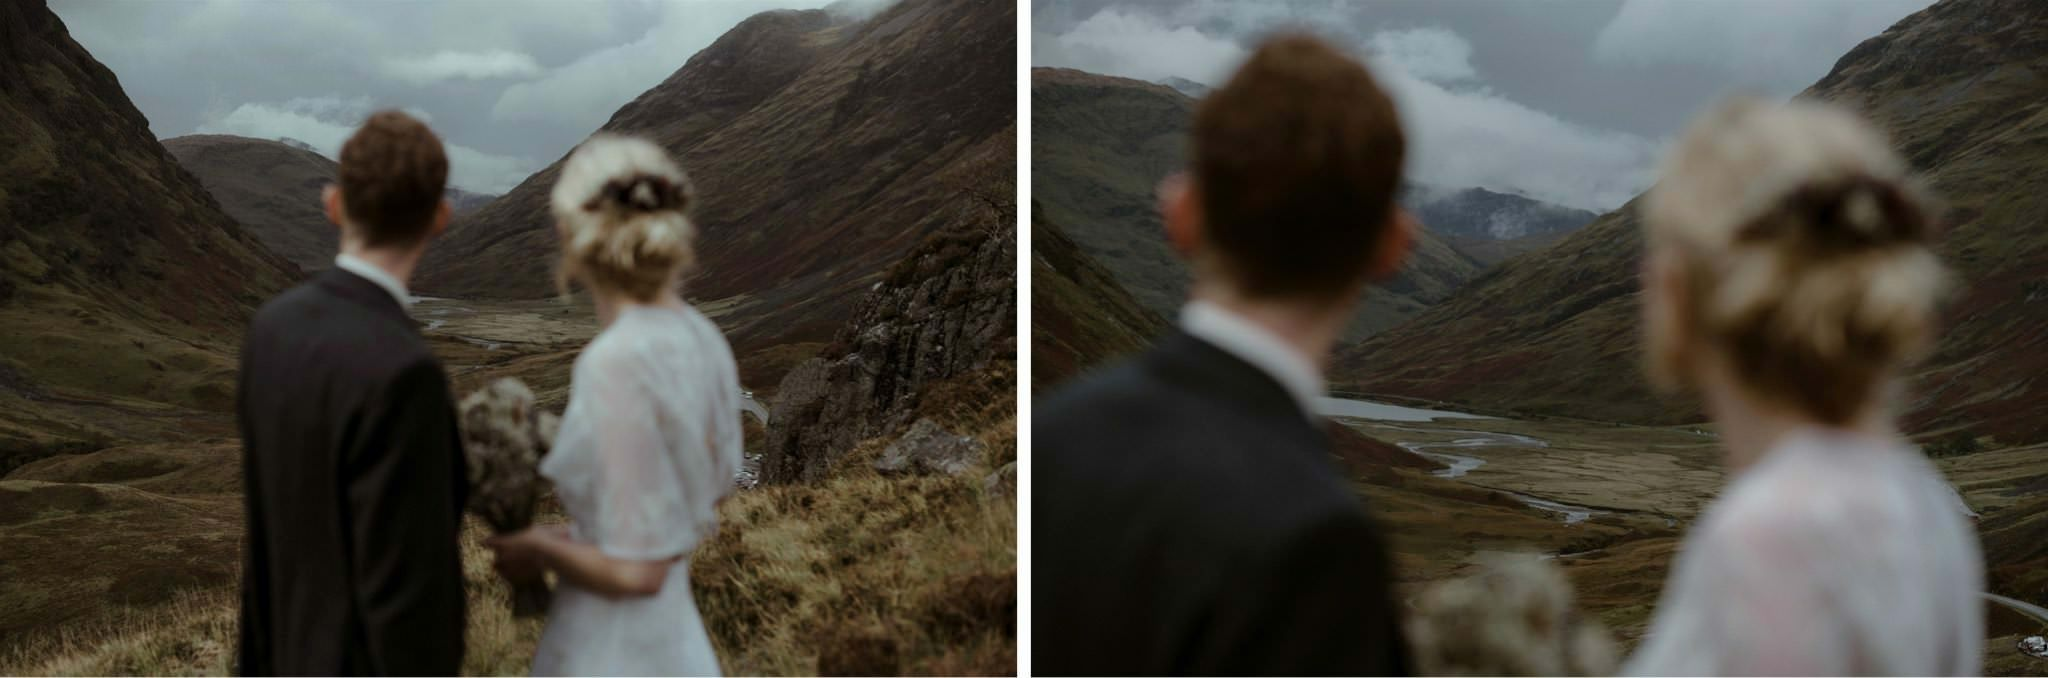 Bride and groom looking down Glencoe Valley during their wedding for two in Scotland